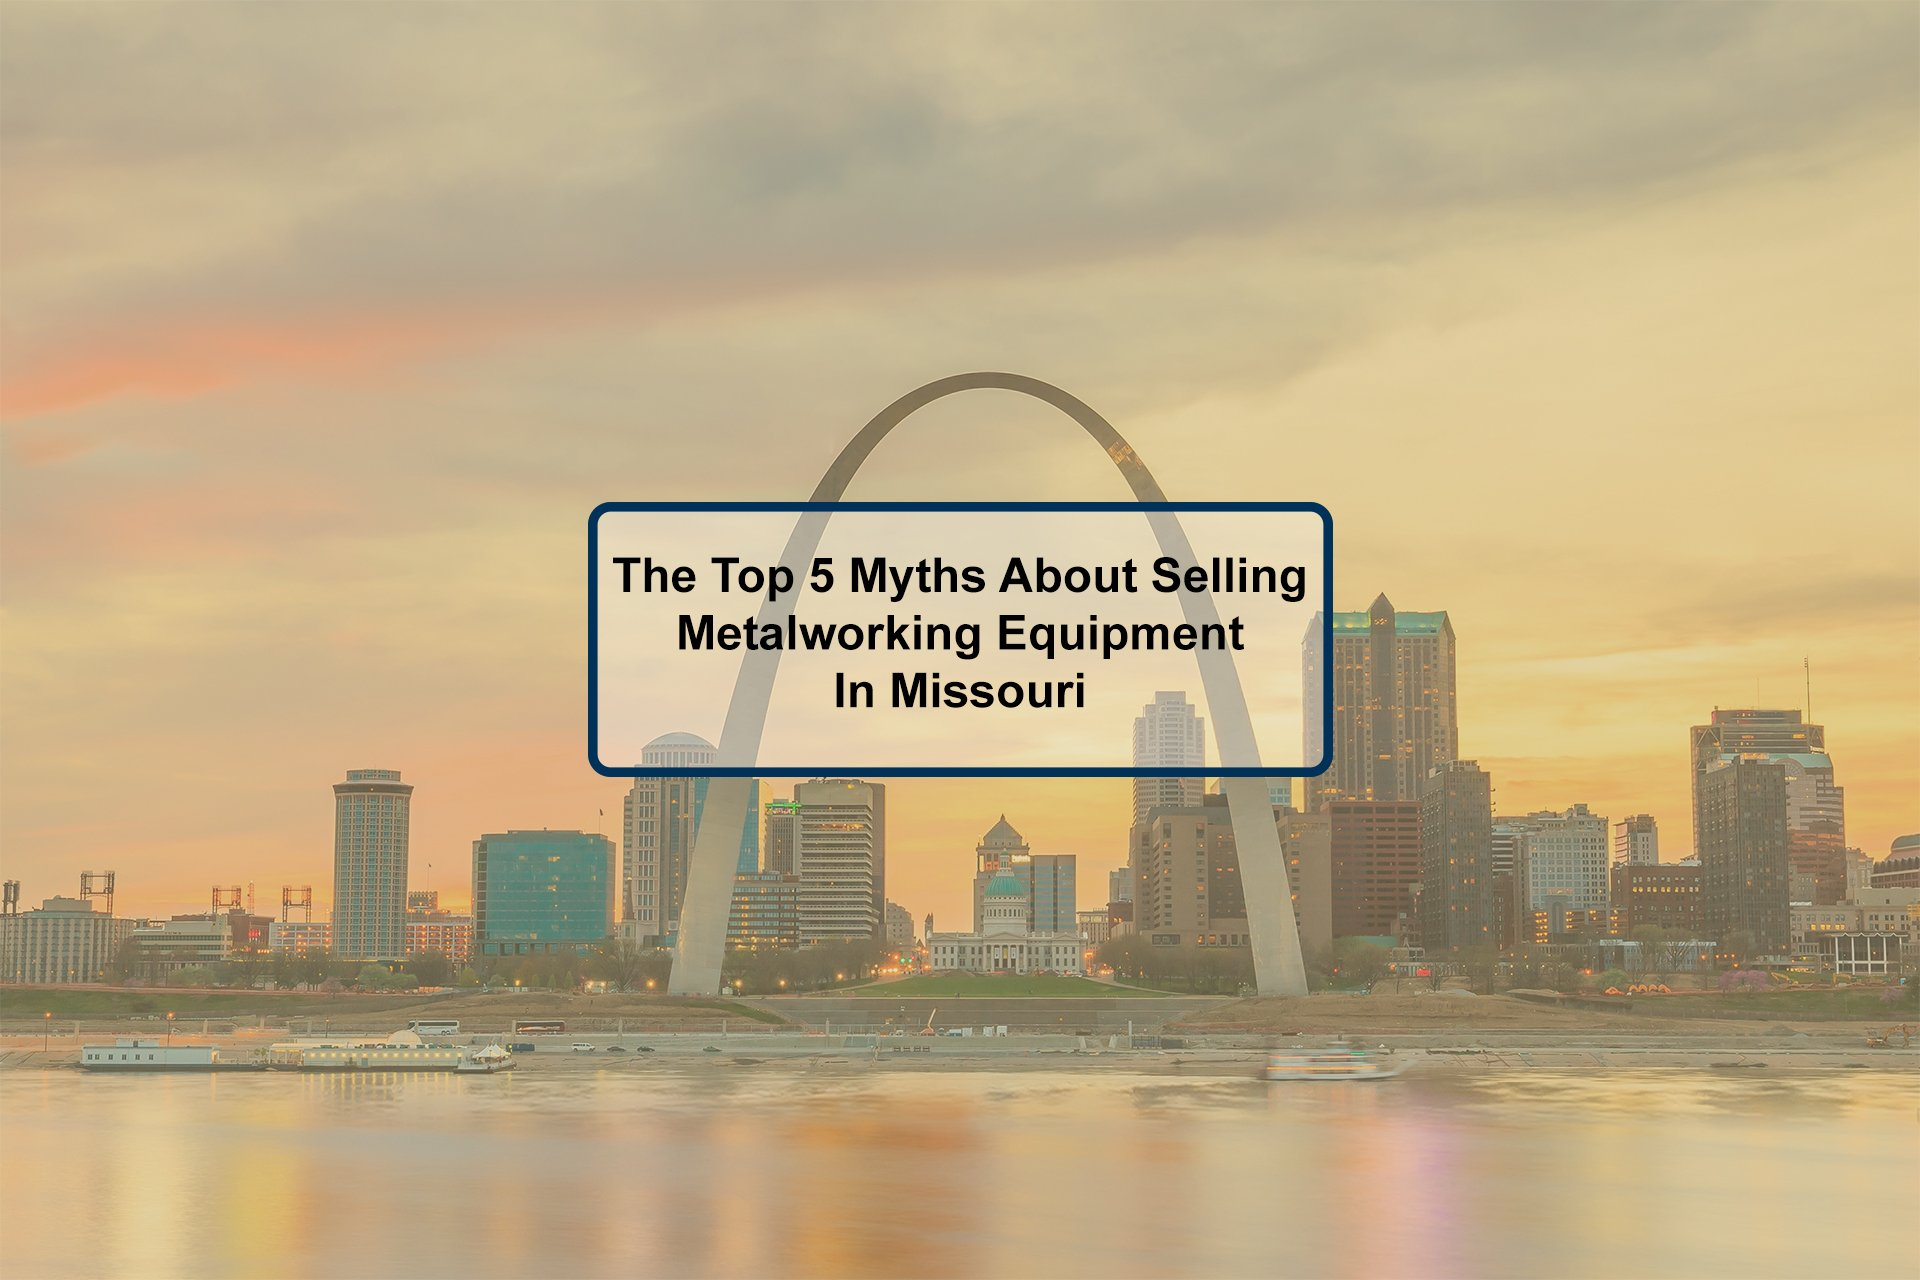 The Top 5 Myths About Selling Used Metalworking Equipment In Missouri